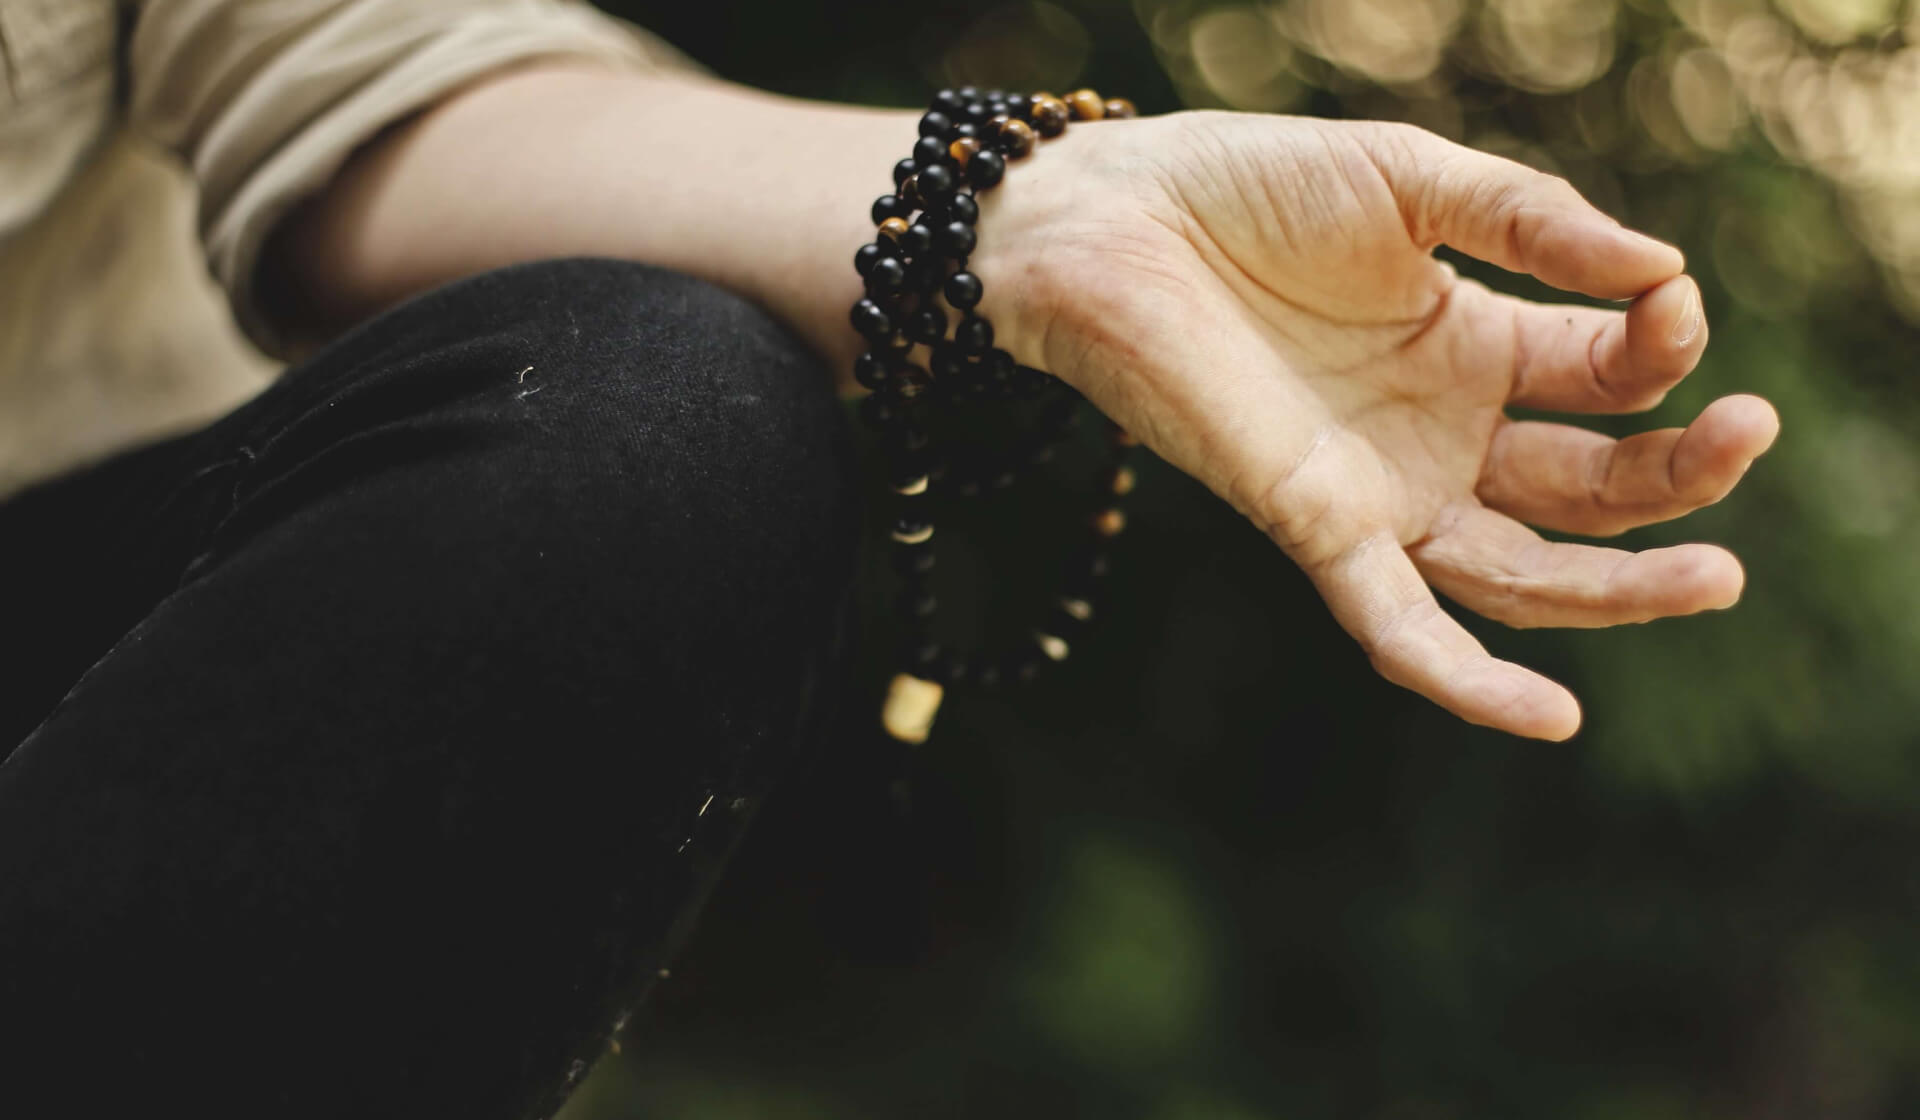 Close-up of a women's knee and hand as she sits crossed-legged in meditation making a mudra with her fingers with mala beads wrapped around her wrist